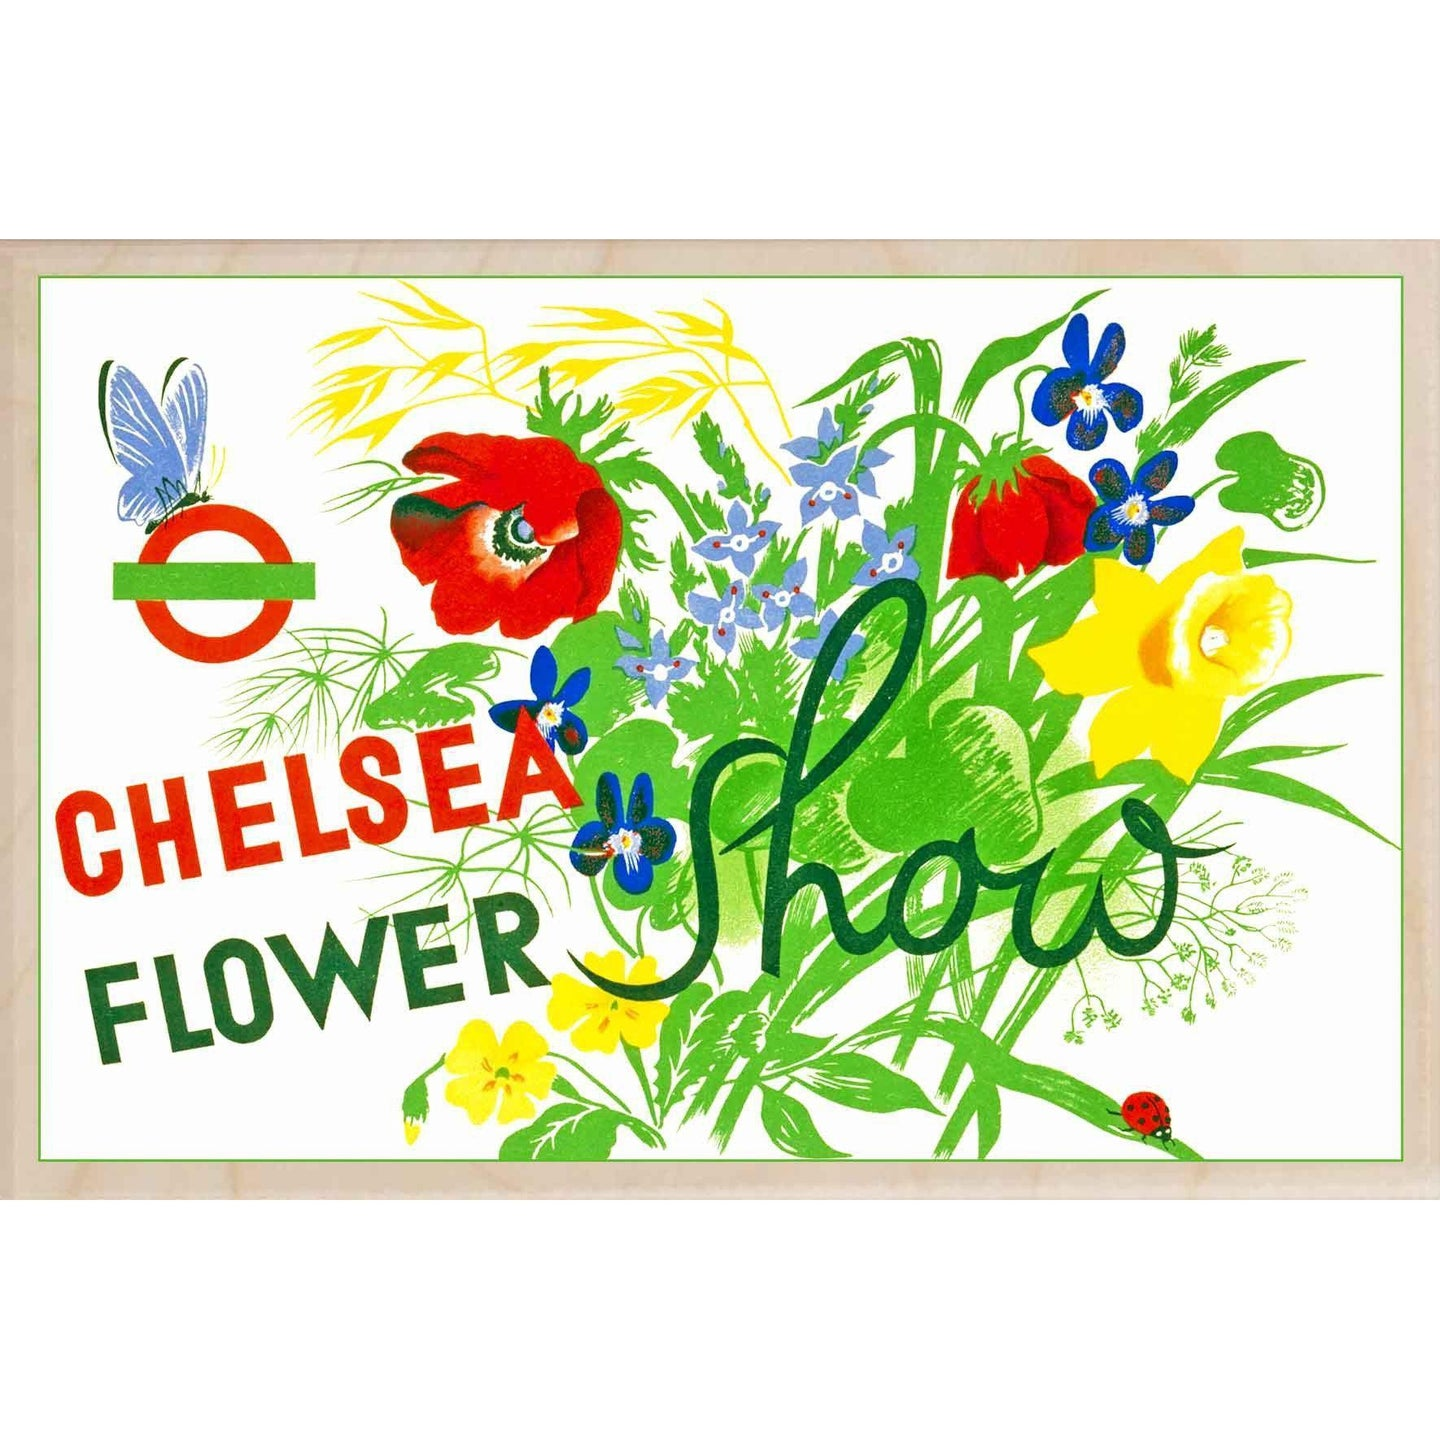 CHELSEA FLOWER SHOW-[wooden_postcard]-[london_transport_museum]-[original_illustration]THE WOODEN POSTCARD COMPANY